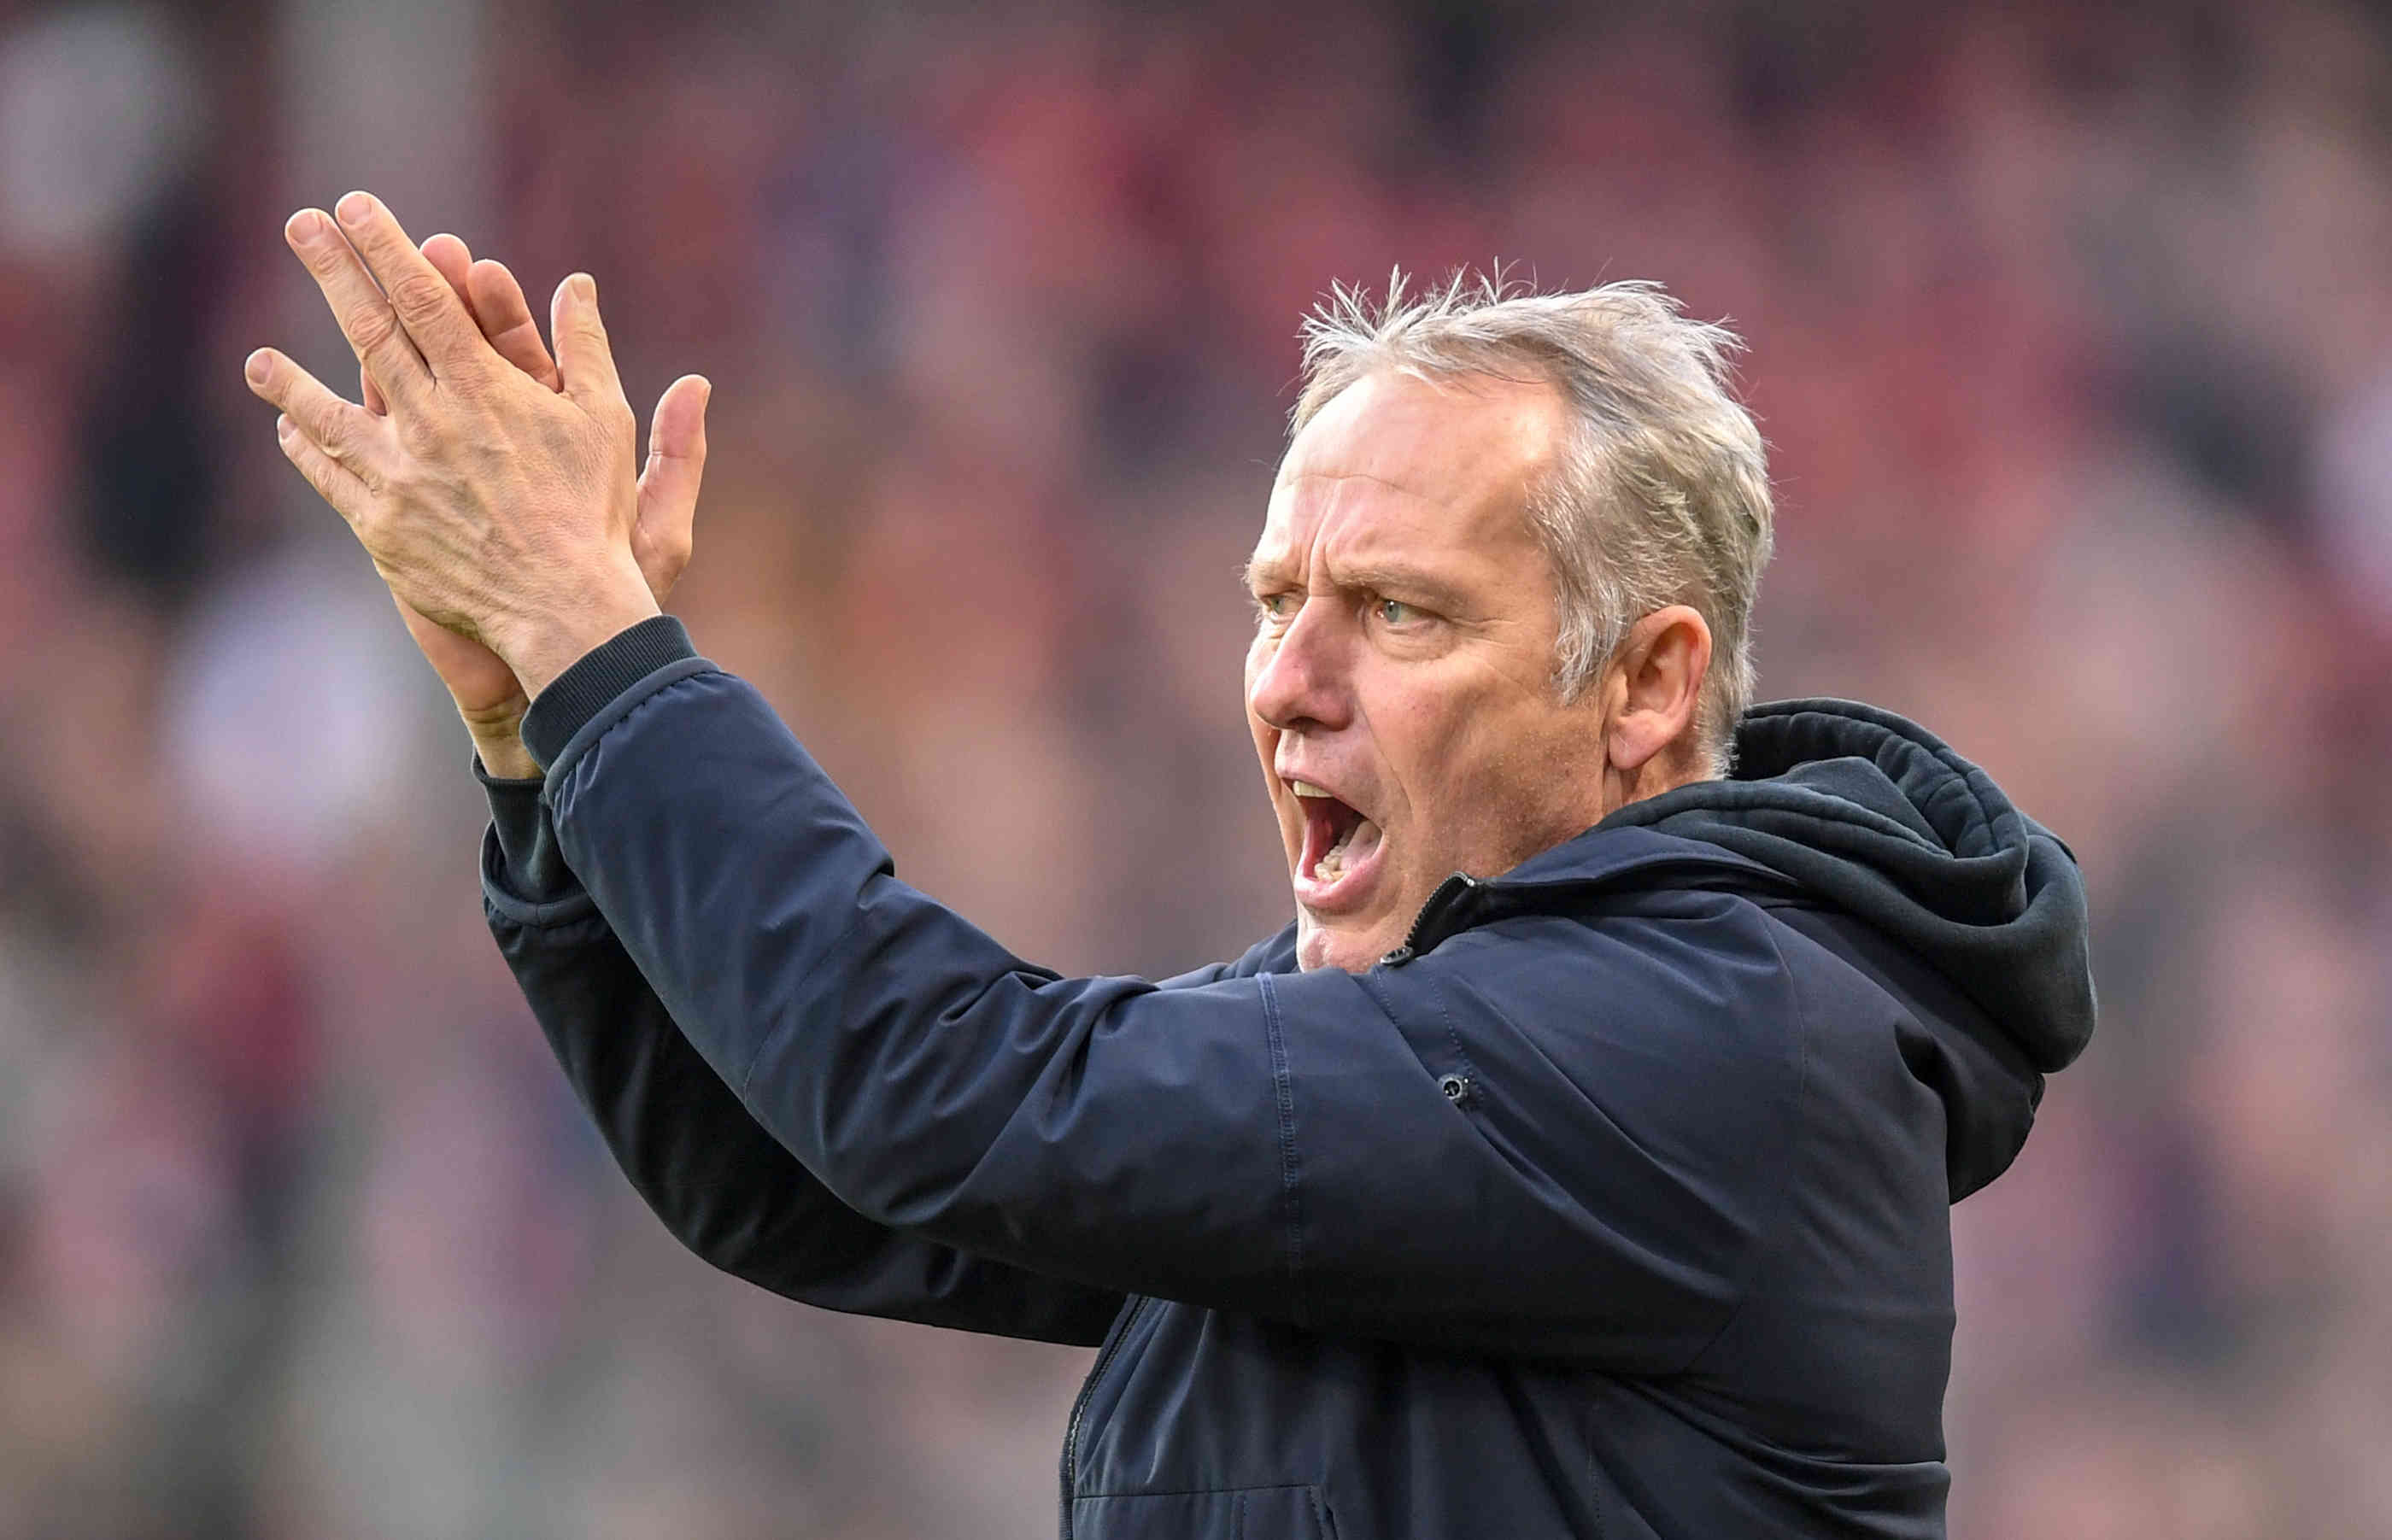 Bundesliga 2019/2020: Die Trainer Der Bundesligisten